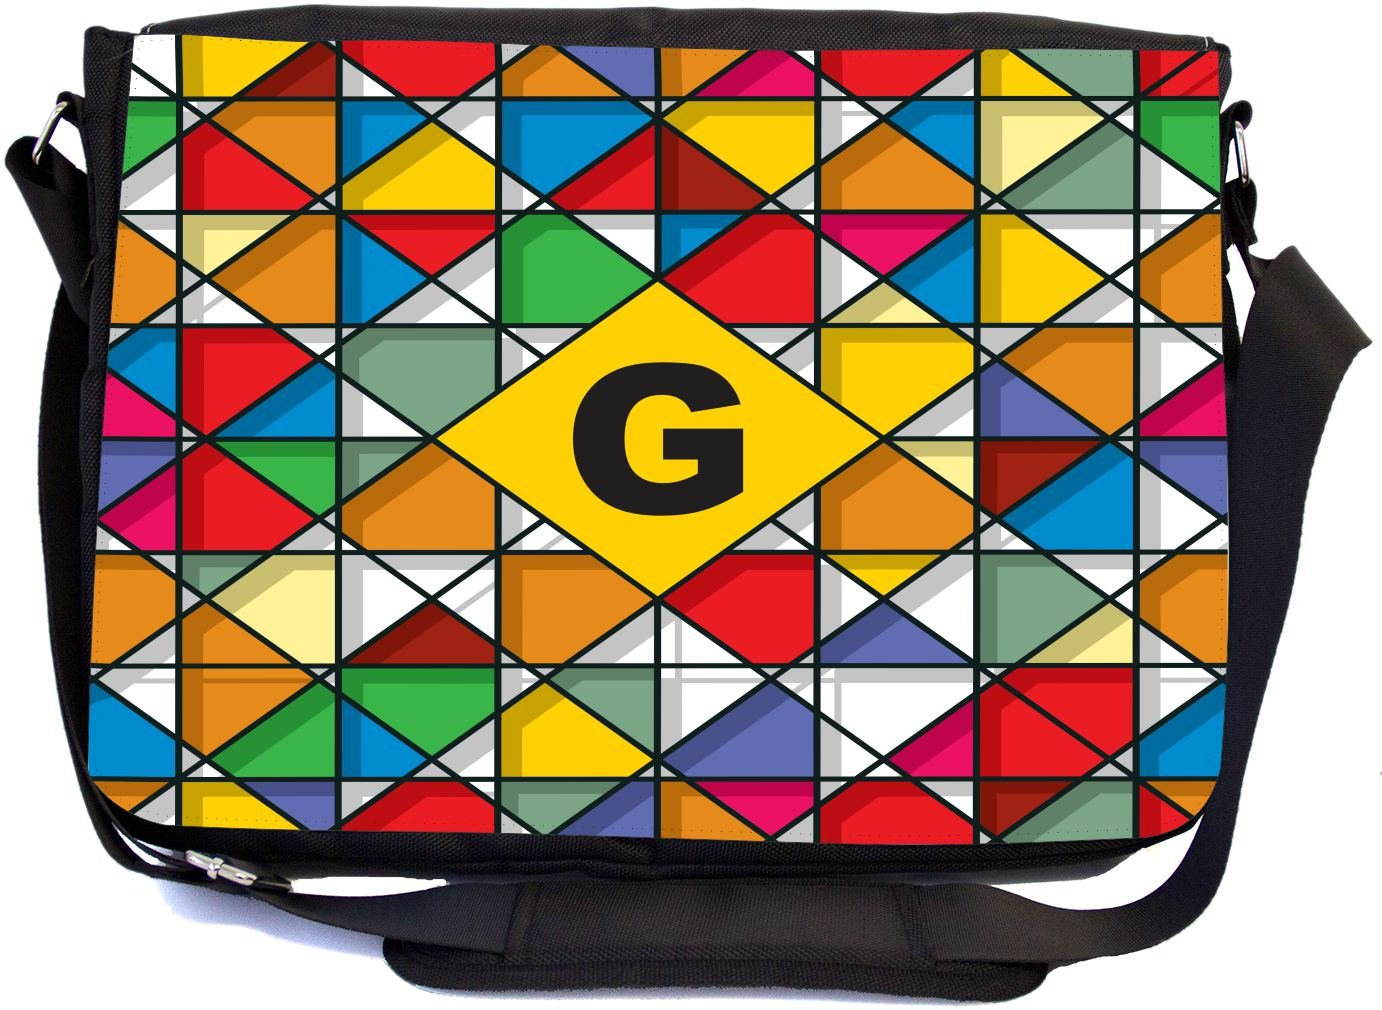 Rikki Knight Letter G Monogram Vibrant Colors Stained Glass Design Design Combo Multifunction Messenger Laptop Bag - with Padded Insert for School or Work - Includes Wristlet & Mirror